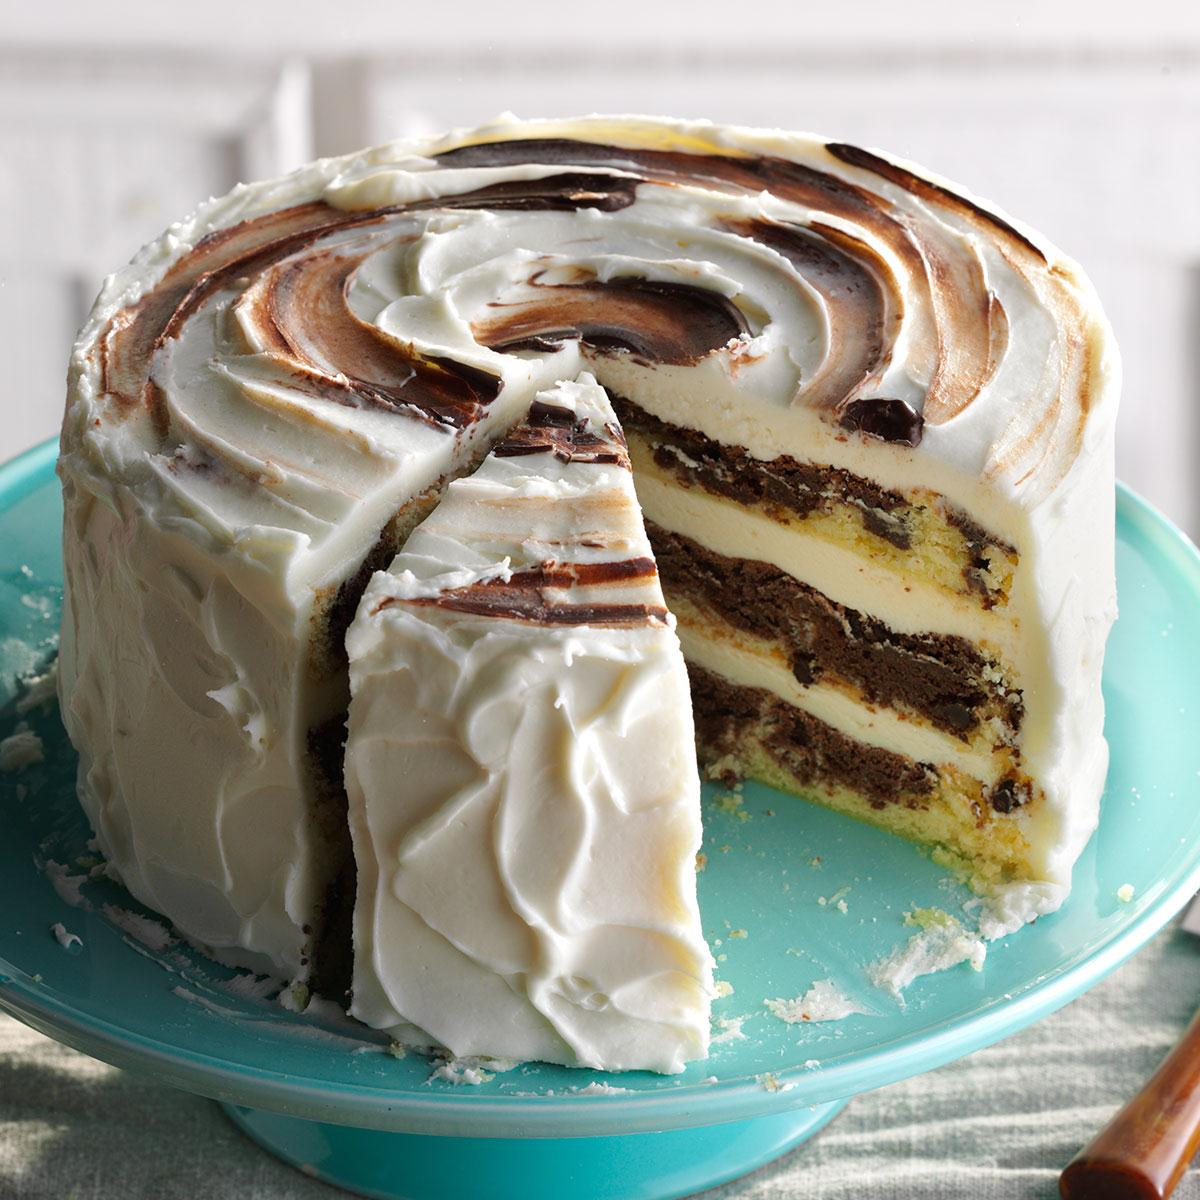 Marvelous Marble Cake Recipe